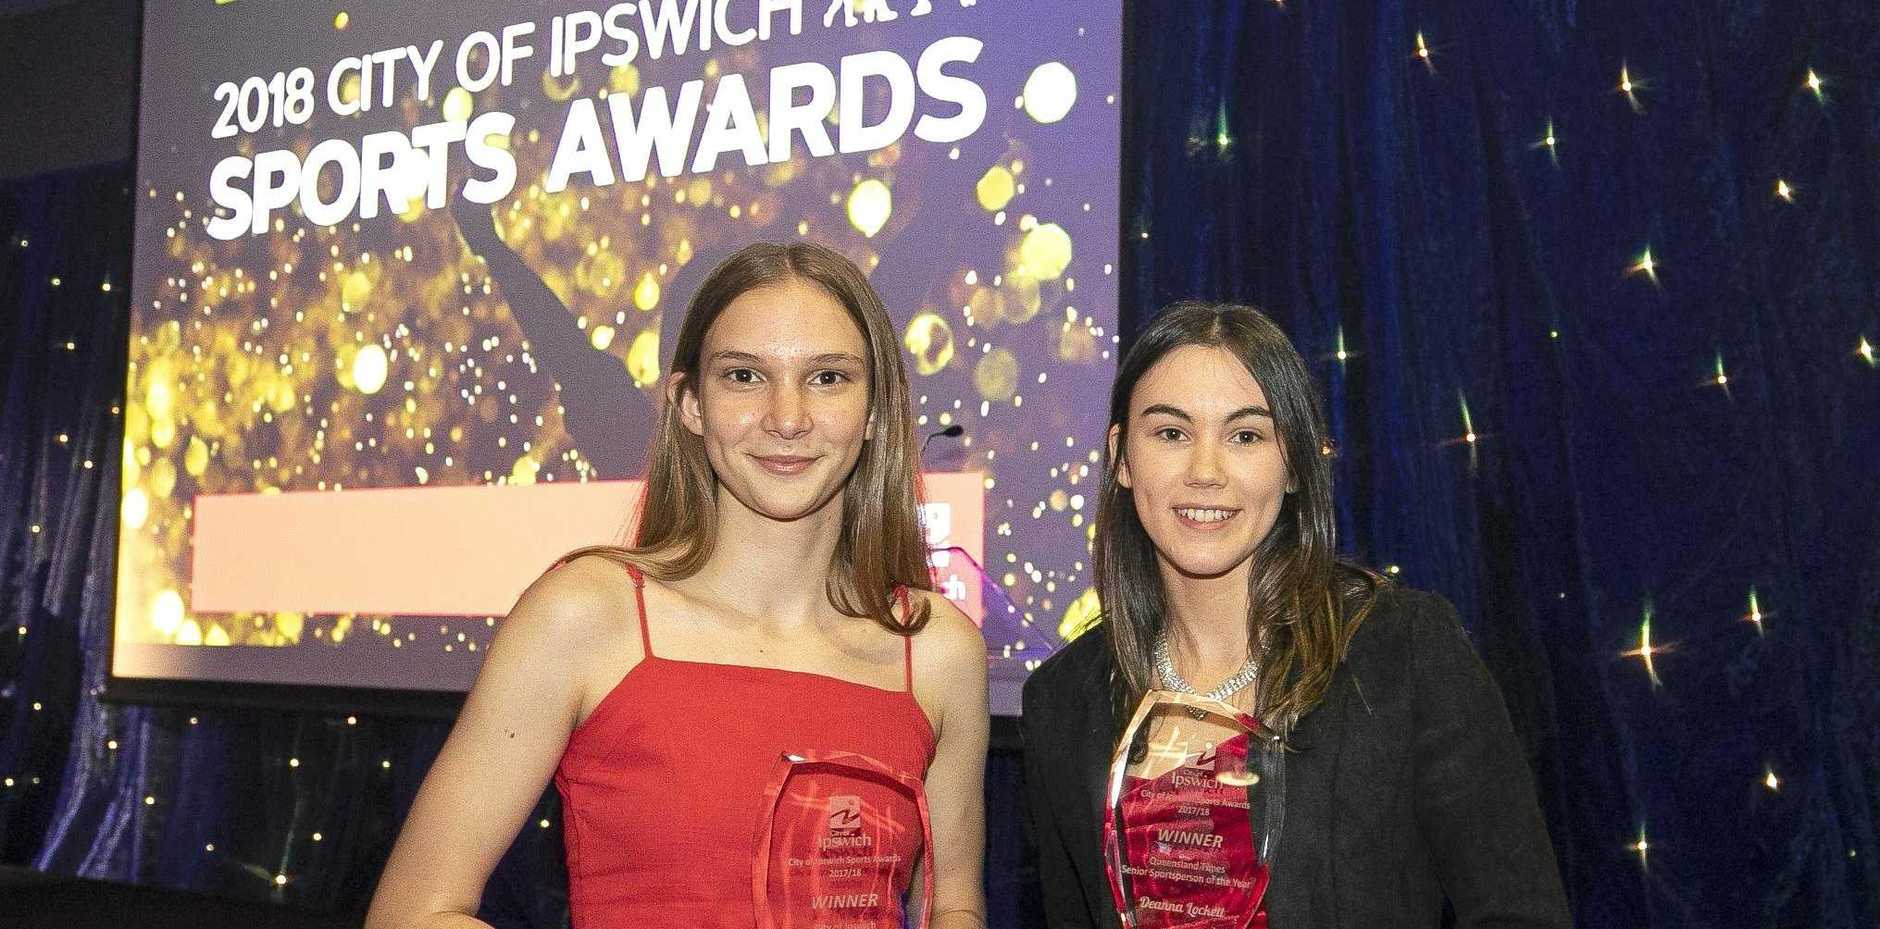 2018 City of Ipswich Sports Awards winners Tamzin Christoffel (Junior Sportsperson of the Year) and Deanna Lockett (Senior Sportsperson of the Year).